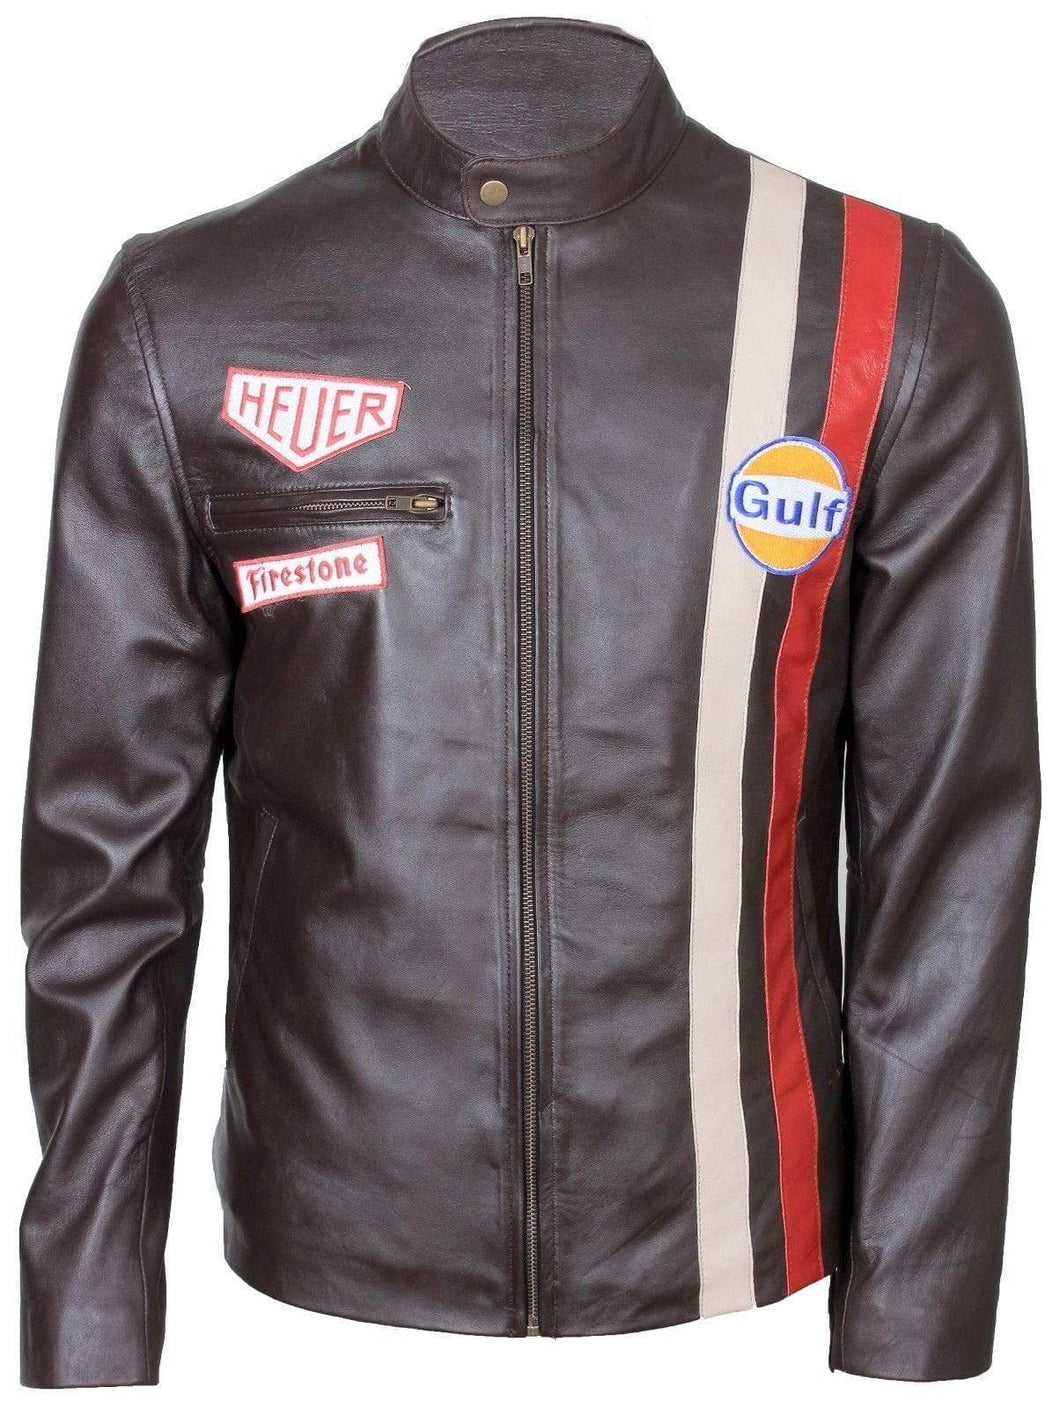 White Red Stripped Le Man Grand Prix Gulf Steve McQueen Leather Jacket - leathersguru